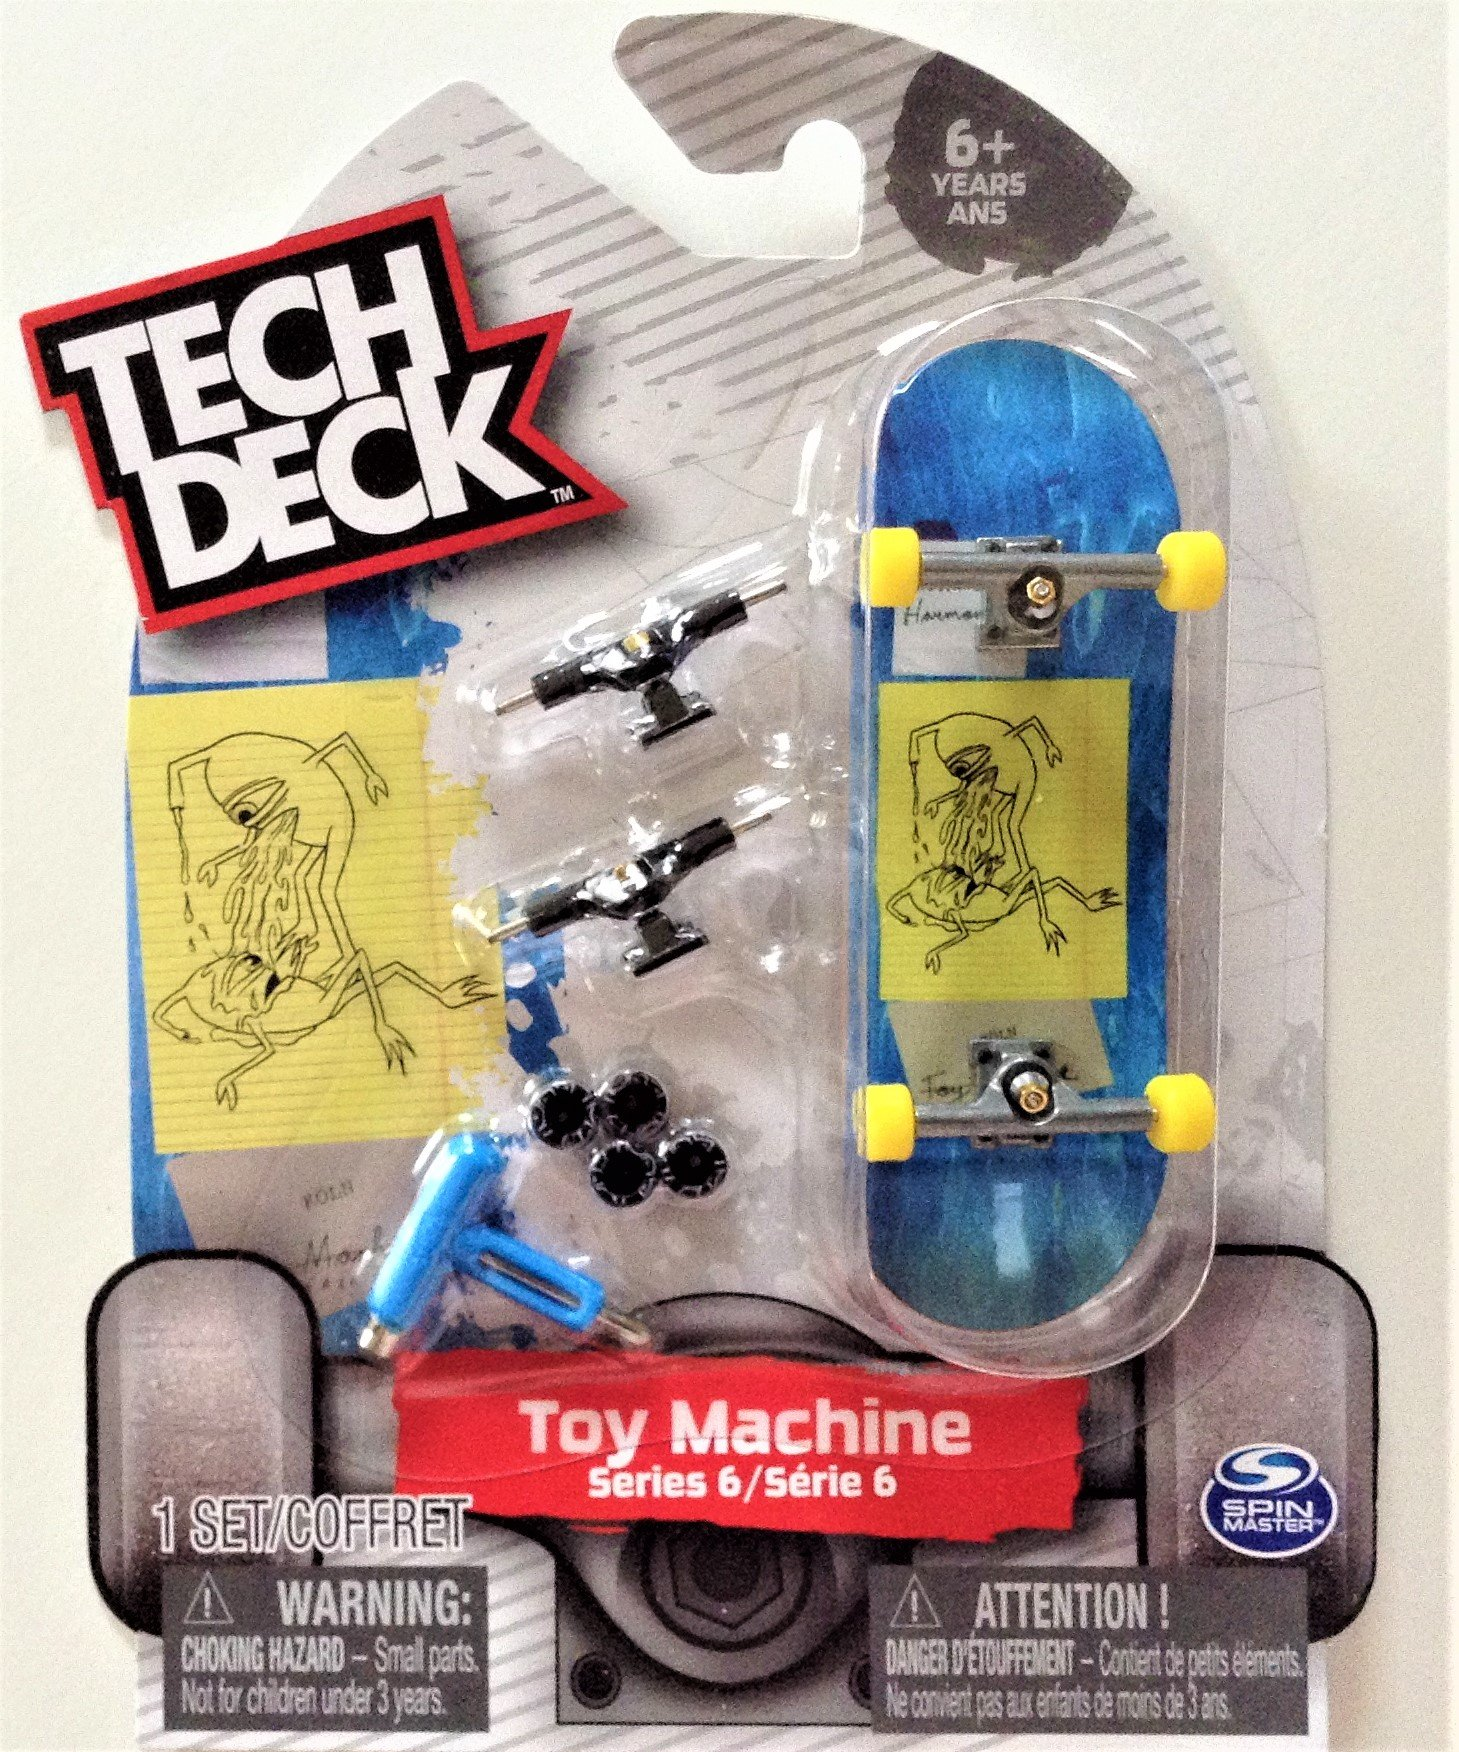 fingerboard Tech Deck TOY MACHINE Series 6 Joshua Harmony Alien Sketch Ultra Rare #20087775